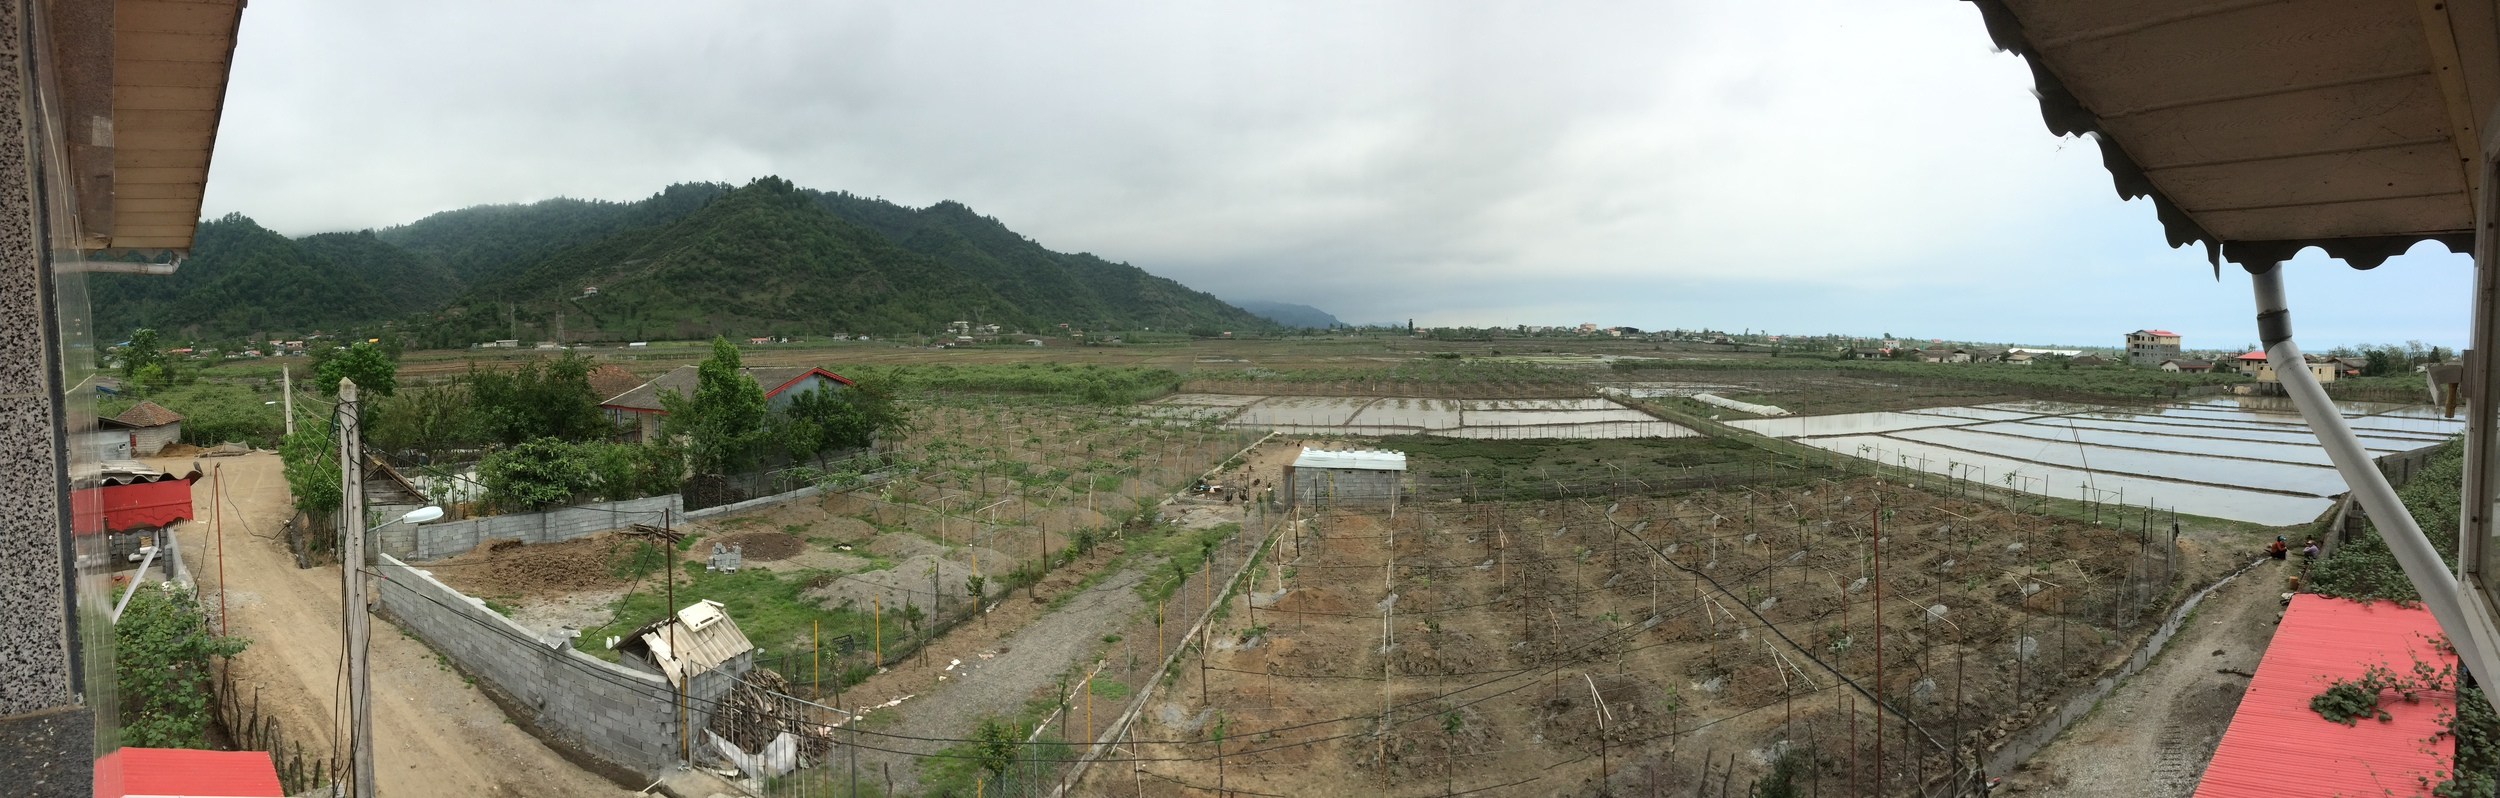 The site of our new double house project, squeezed in between the mountains in the west and the Caspian Sea in the east.